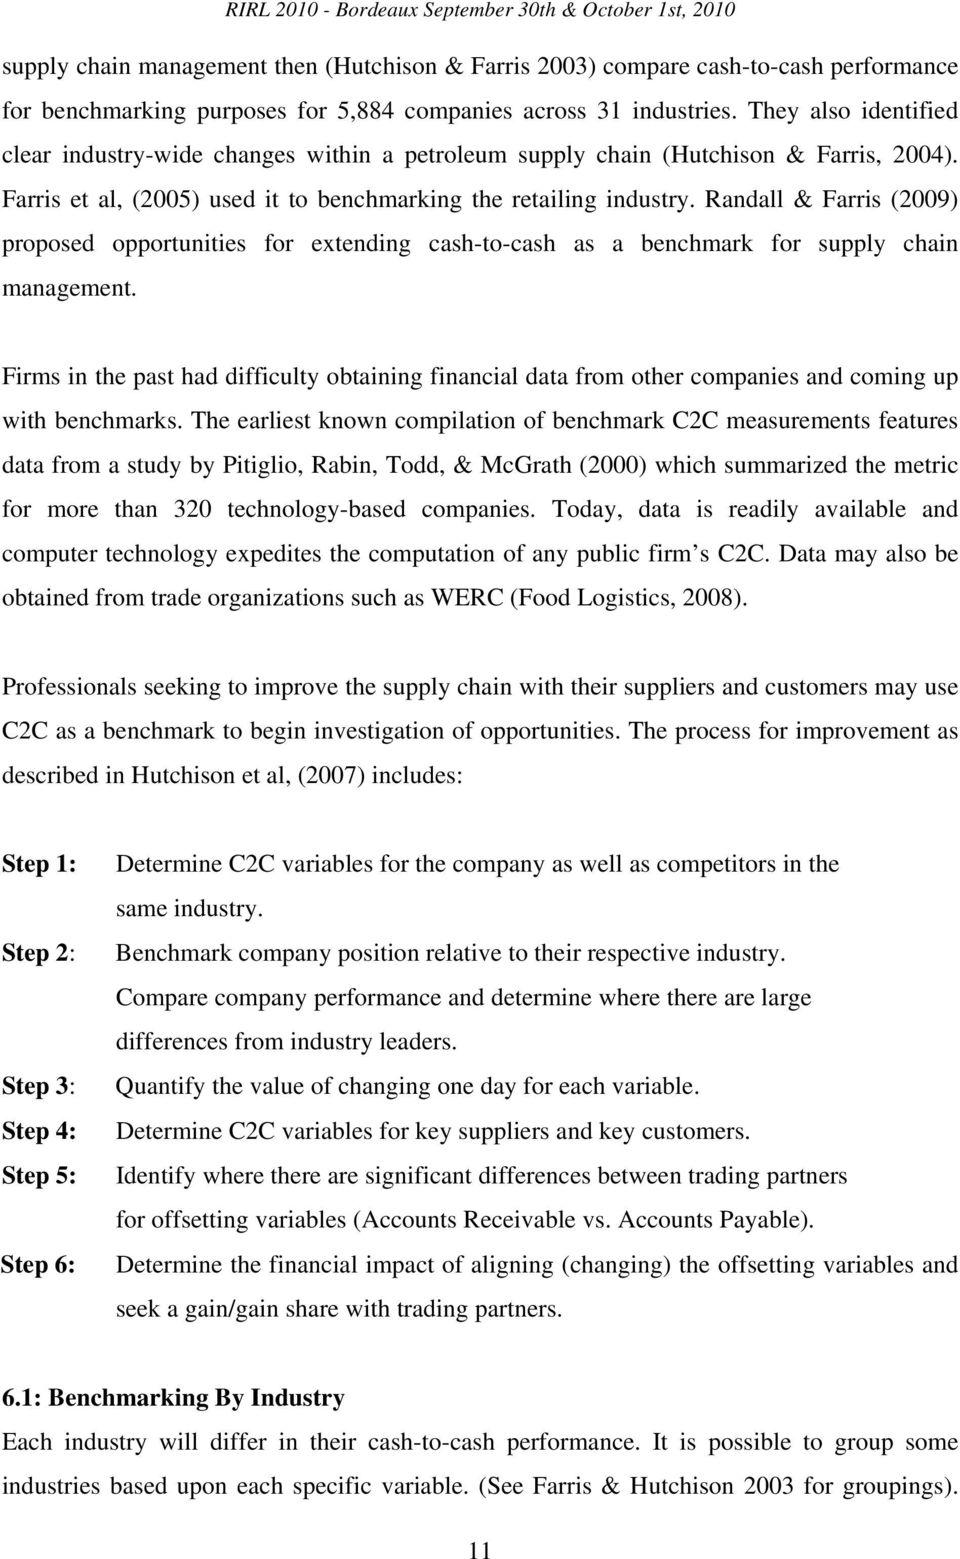 Randall & Farris (2009) proposed opportunities for extending cash-to-cash as a benchmark for supply chain management.